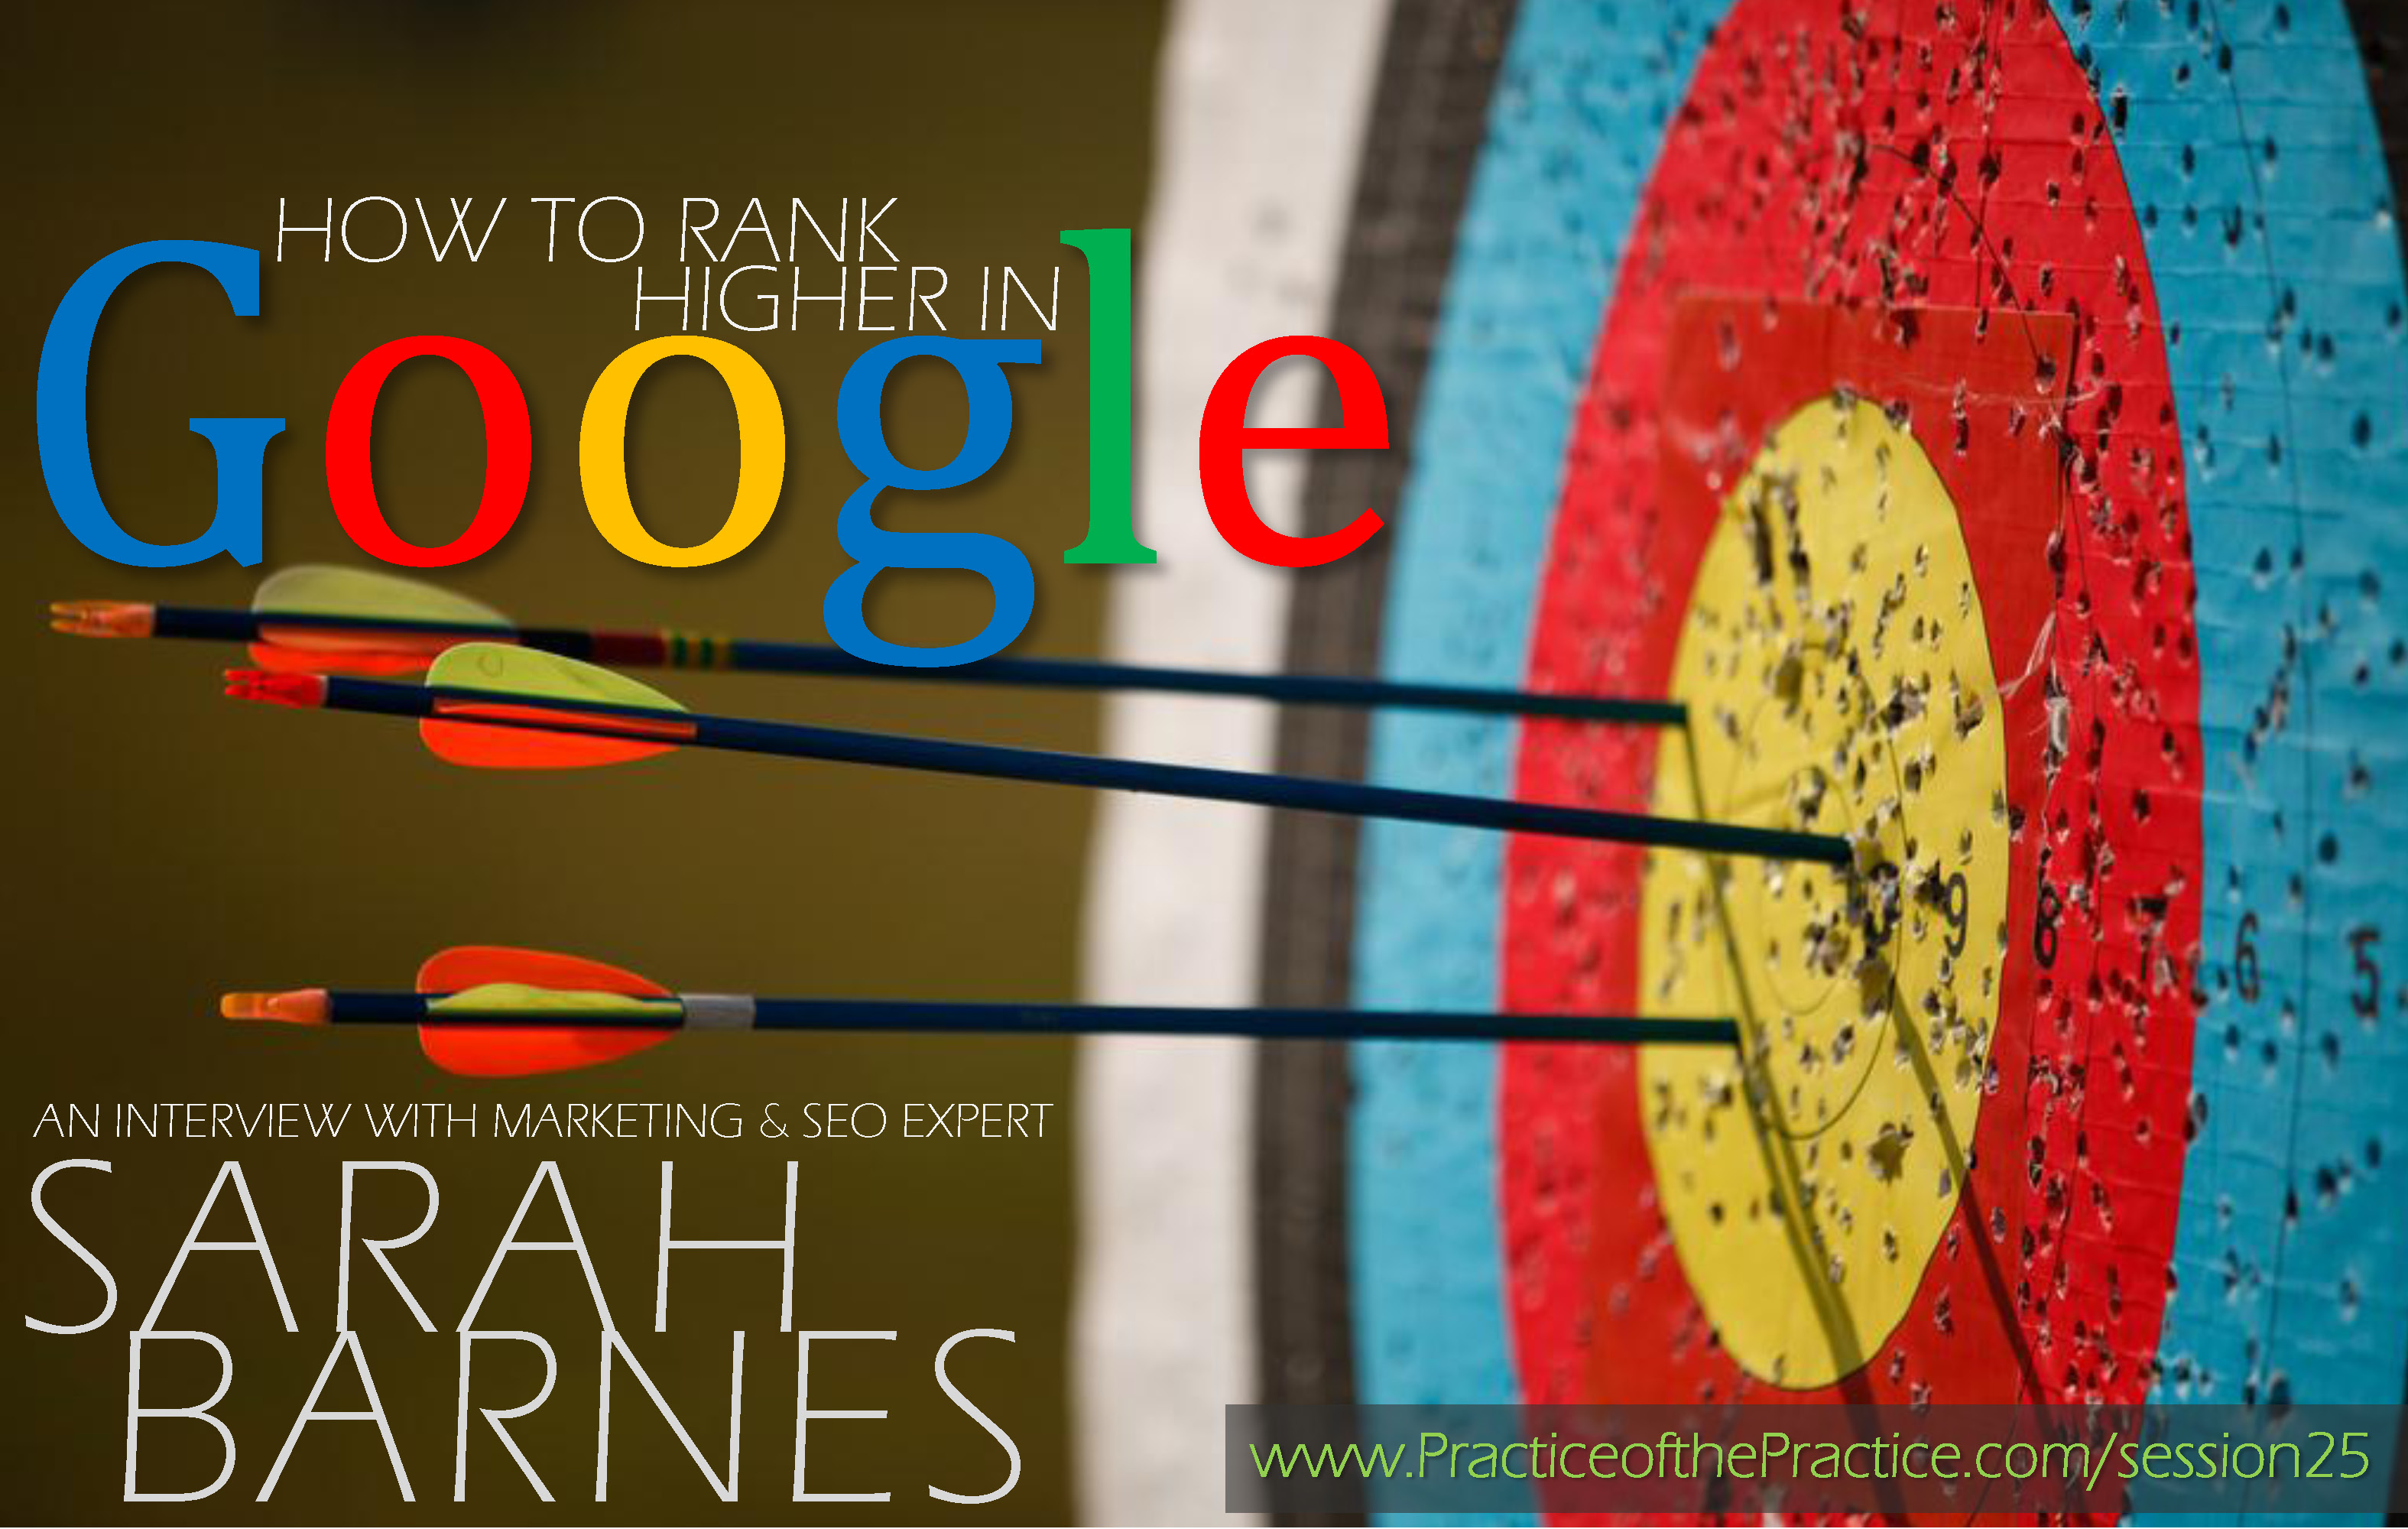 How to rank higher in google